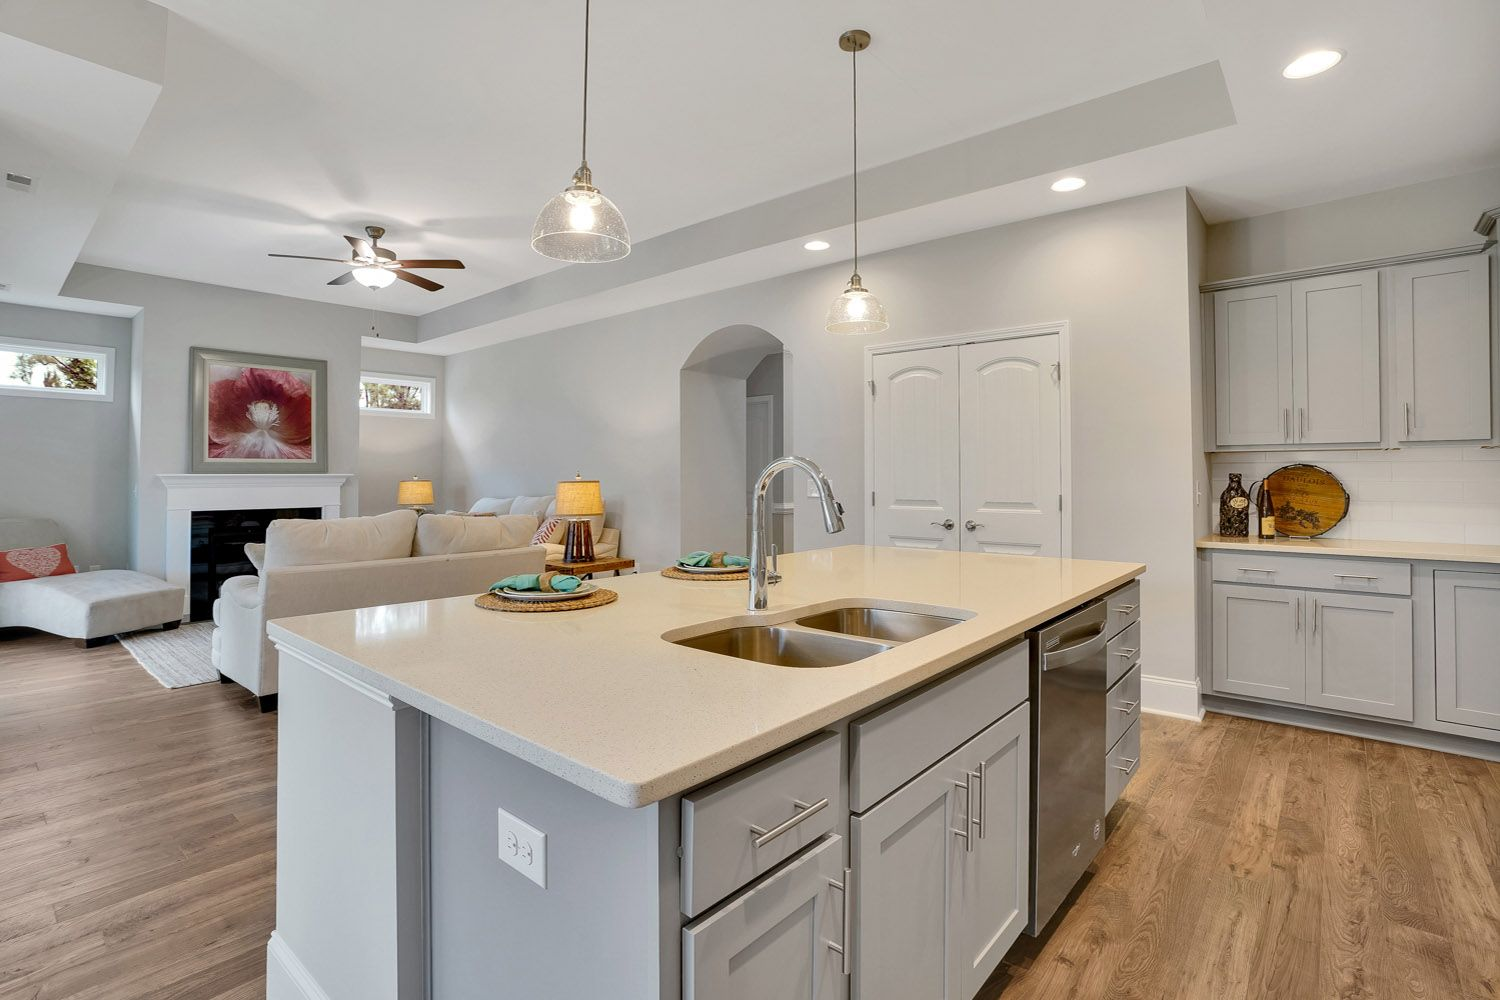 Kitchen featured in the Salerno Craftsman By McKee Homes in Wilmington, NC